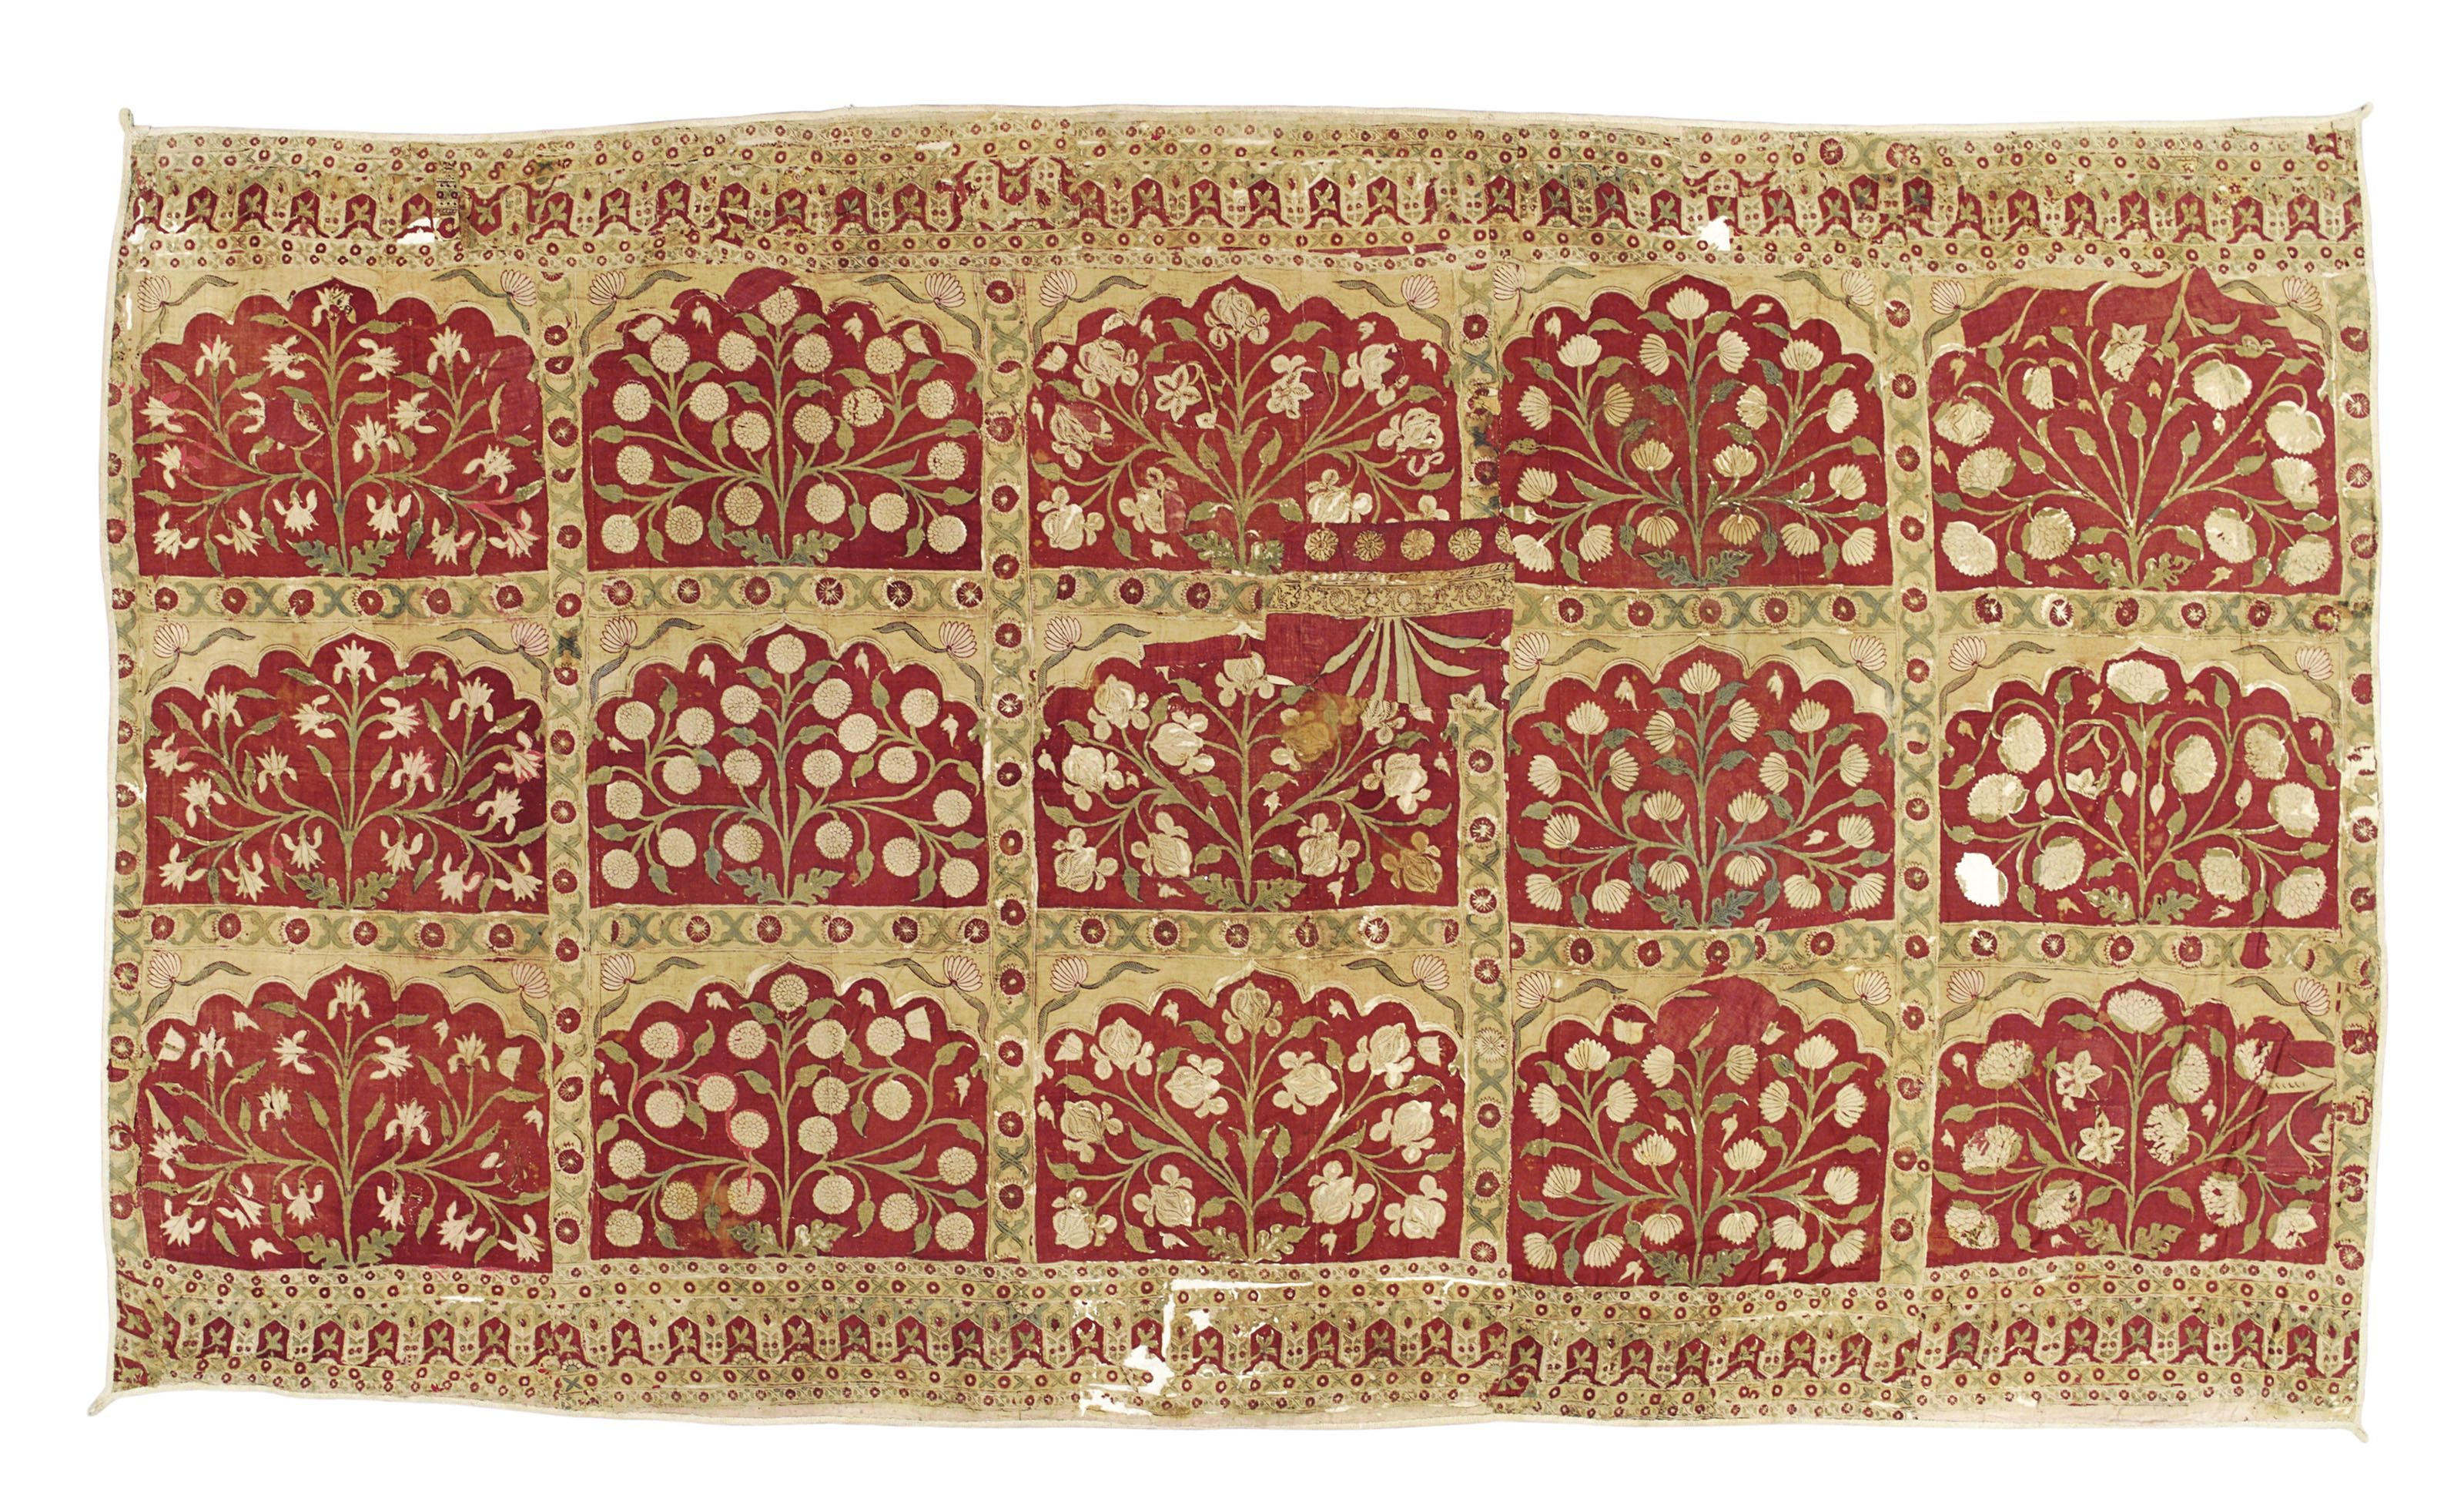 A Large Mughal Tent Wall Panel North India 18th Century 17th Century Textiles Costume Christie S In 2020 Mughal Wall Paneling Tent